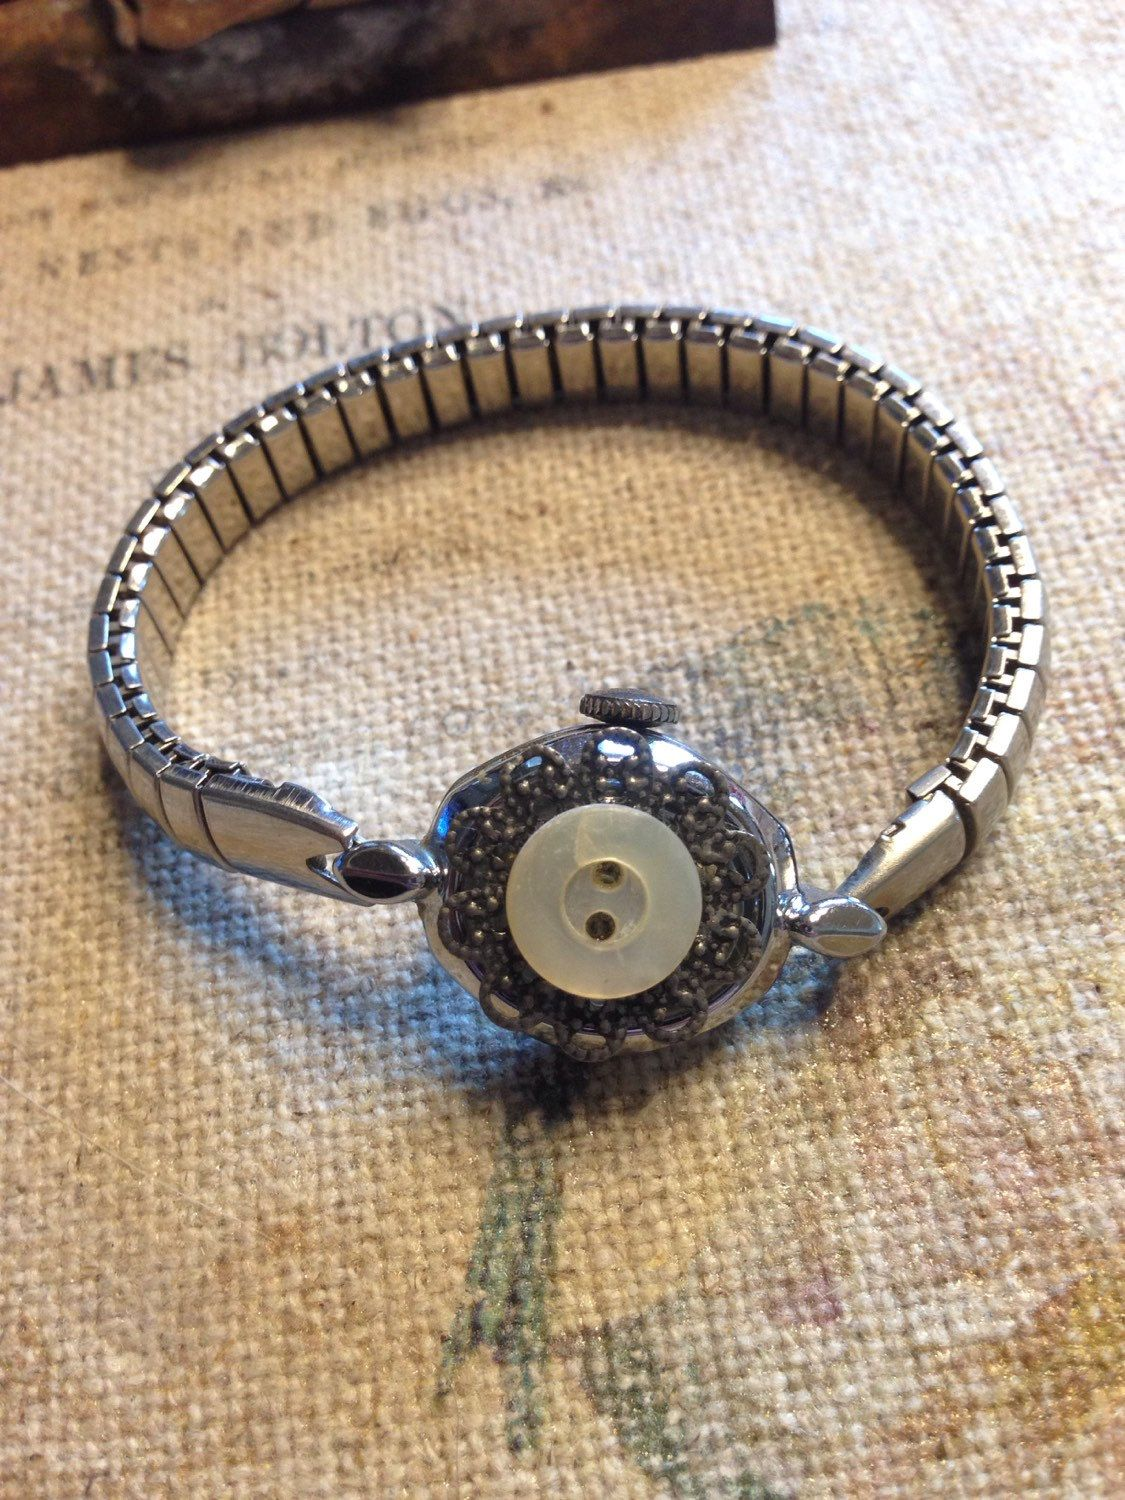 Vintages ladies' watch bracelet by lovelostcreations on Etsy https://www.etsy.com/listing/235955438/vintages-ladies-watch-bracelet